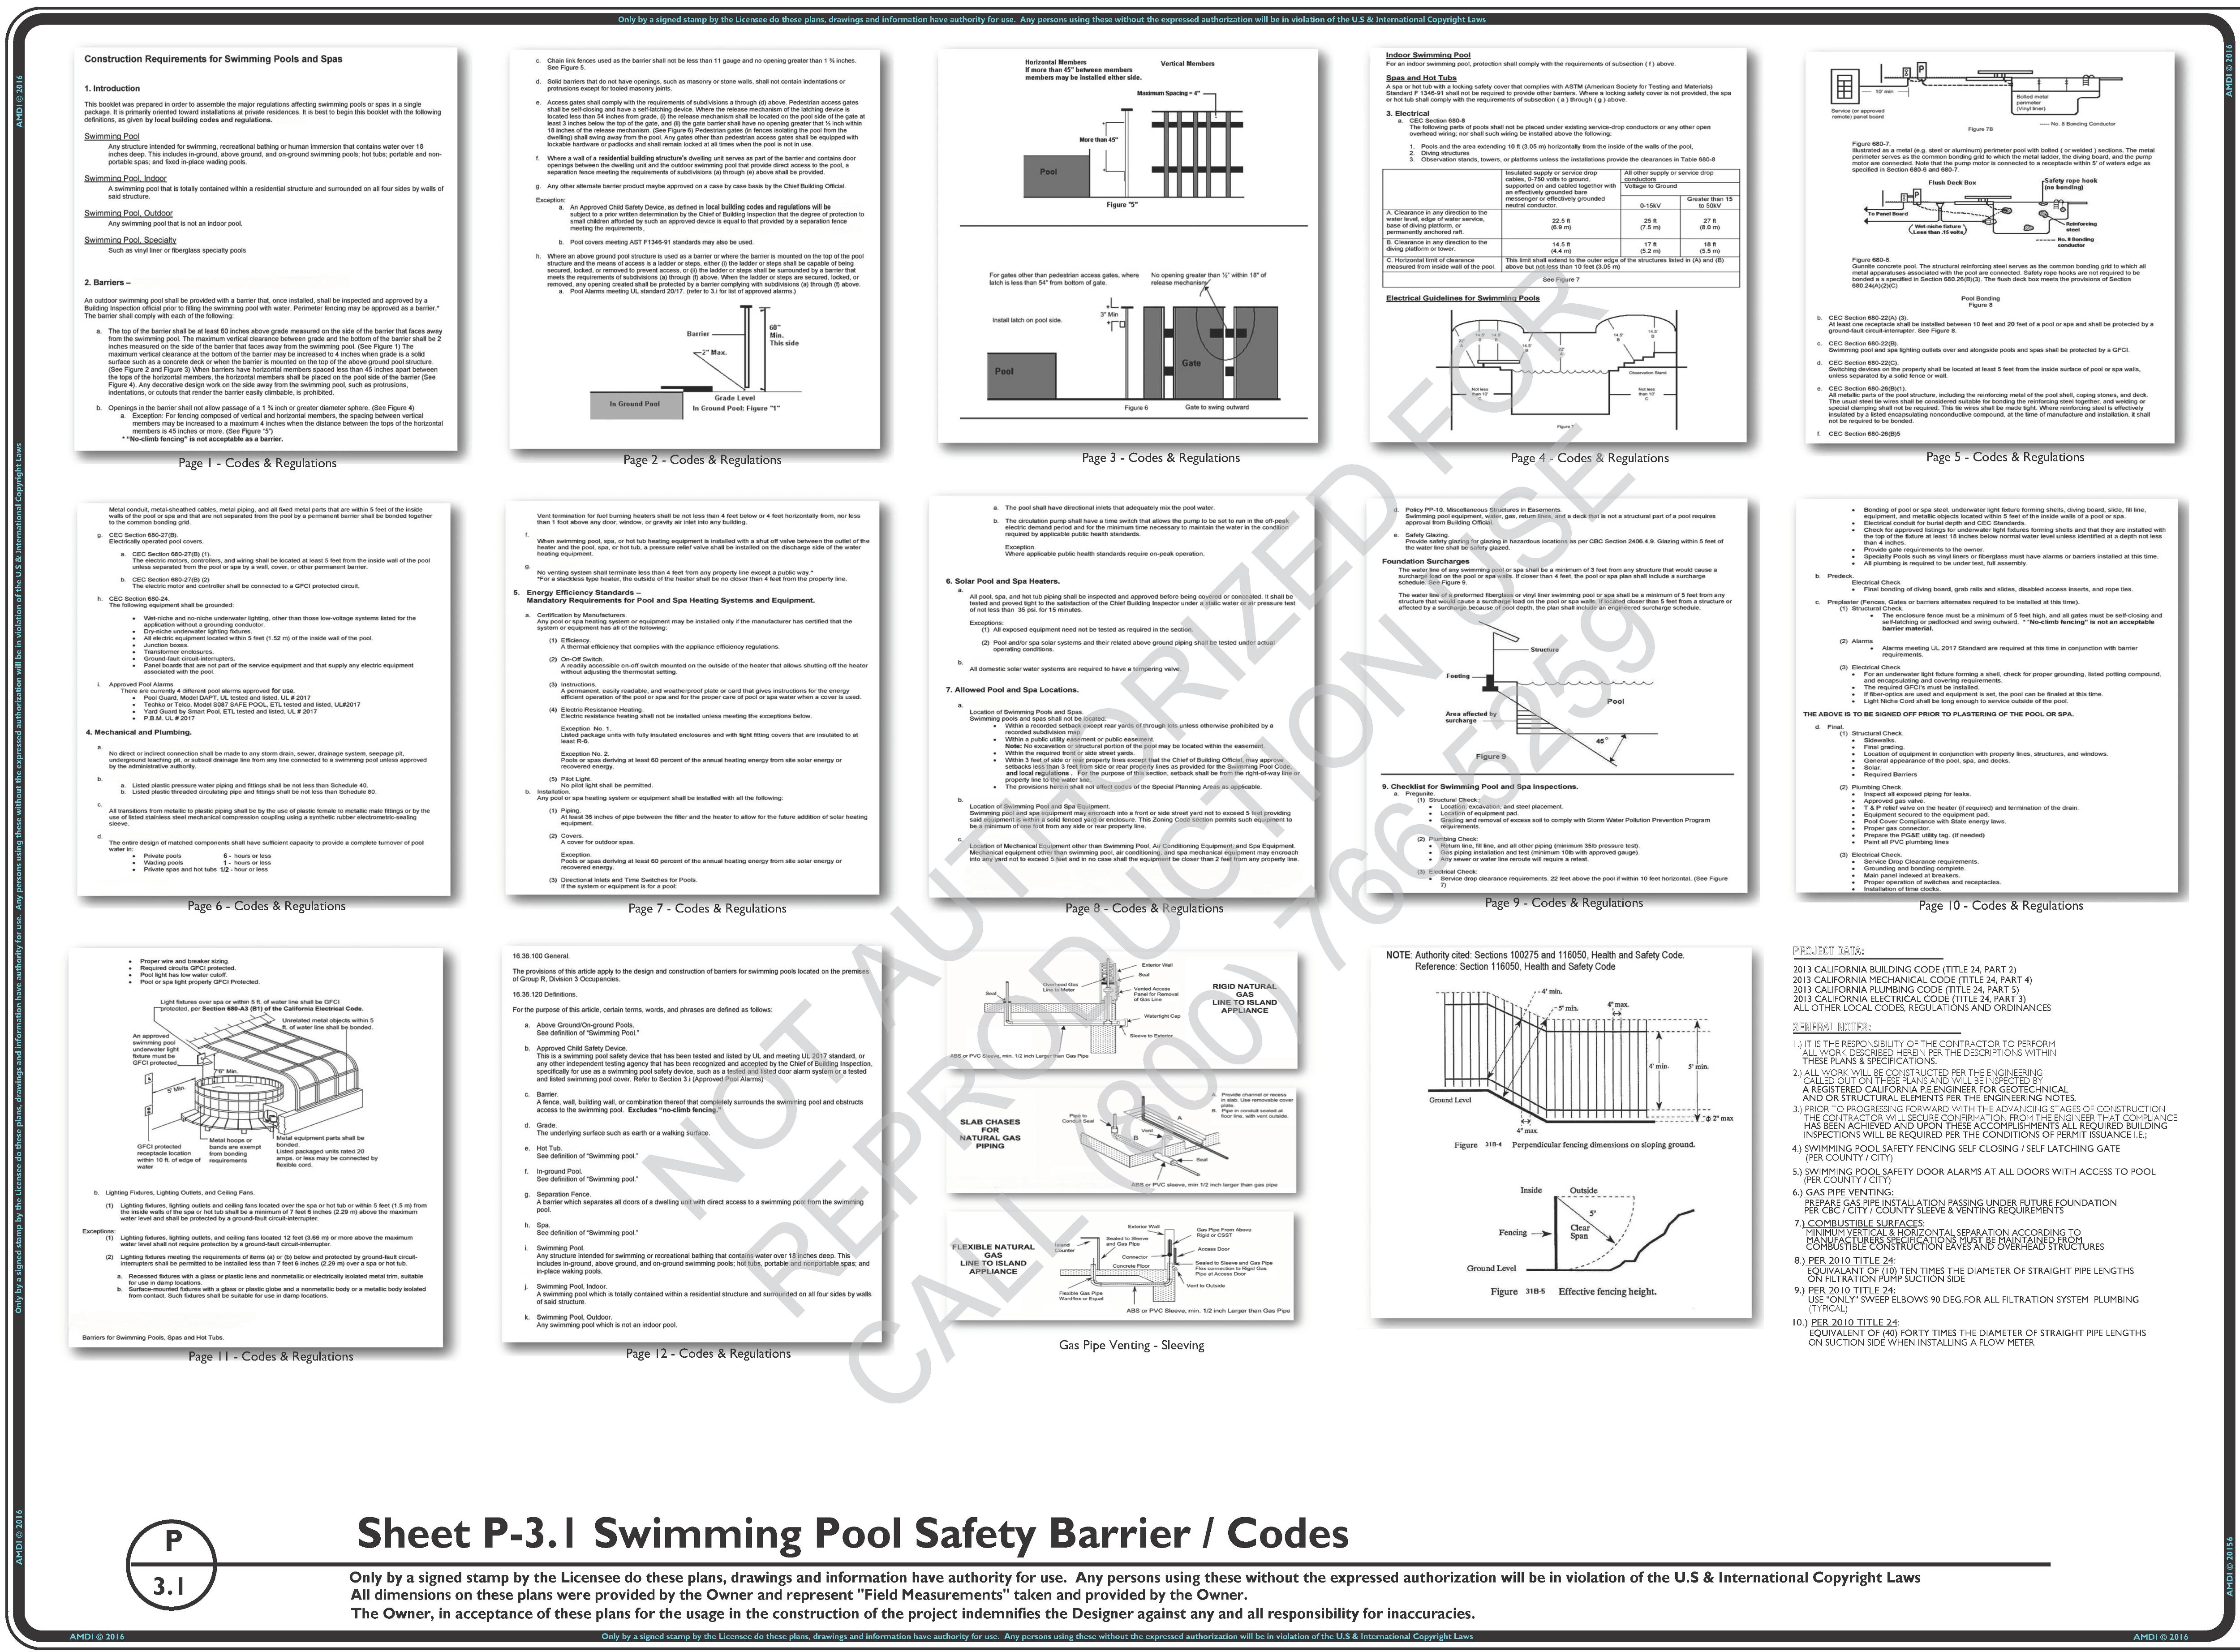 P-3.1 Safety Barriers / Codes